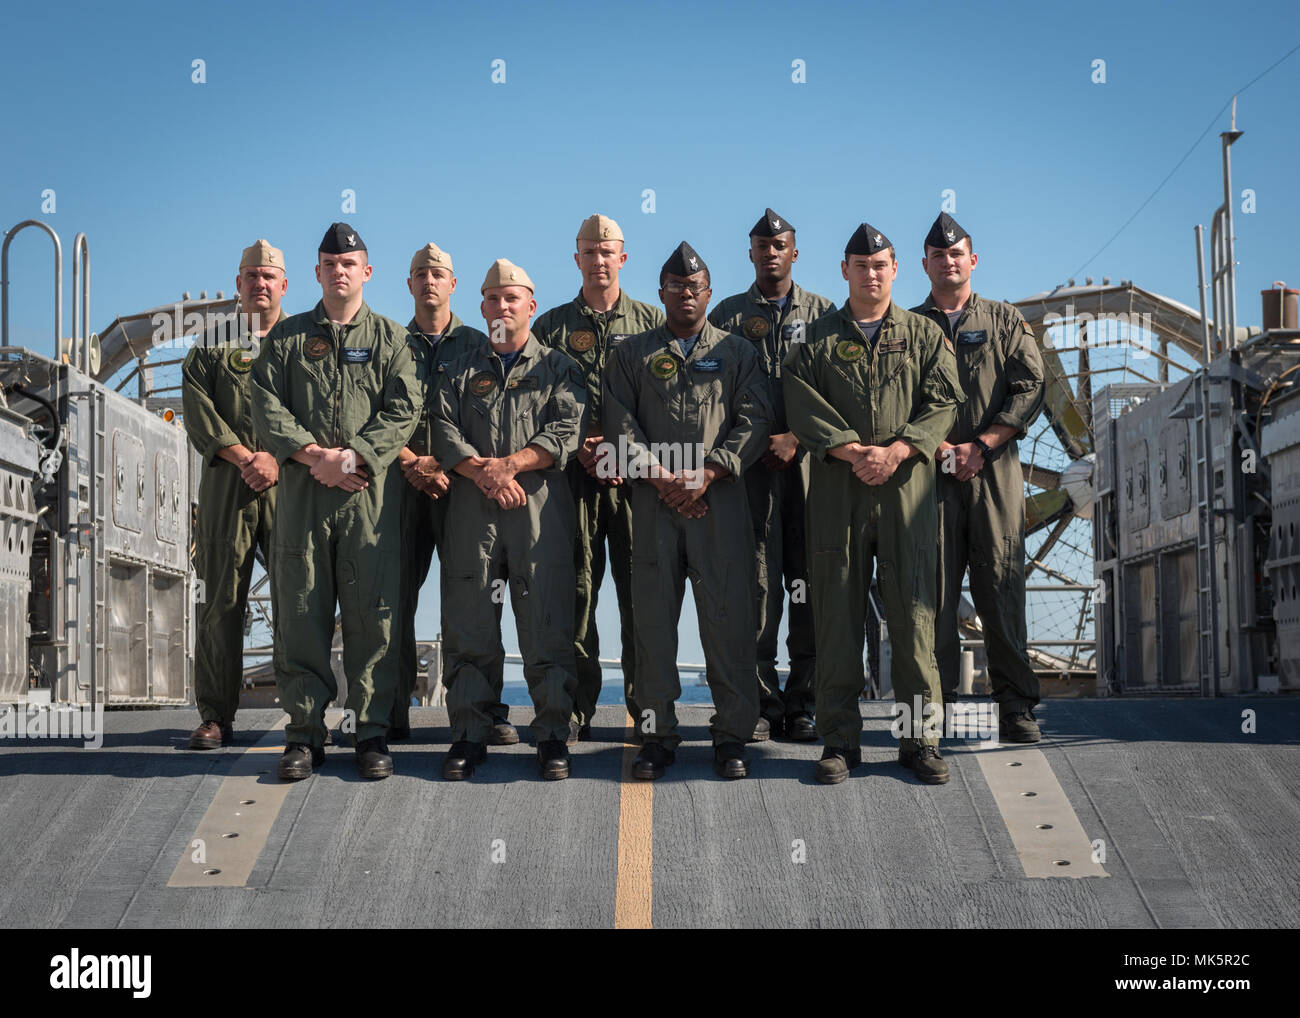 Sailors from Assault Craft Unit Four (ACU 4), based in Little Creek, Virginia show presence of their being detached to the Naval Surface Warfare Center Panama City Division (NSWC PCD) by standing on deck aboard NSWC PCD's Landing Craft Air Cushion (LCAC) 91. U.S. Navy Photo by Anthony Powers. - Stock Image